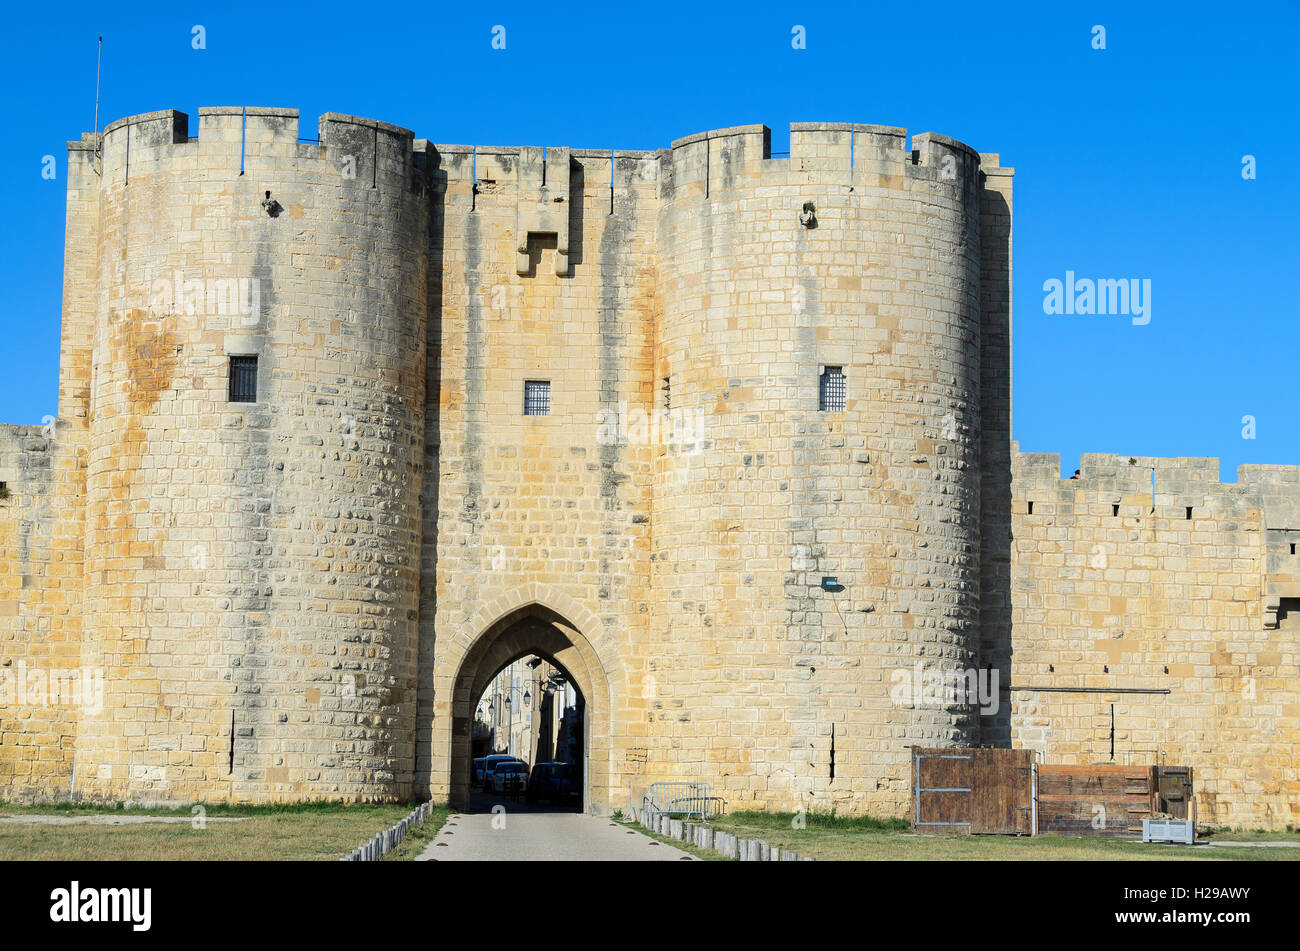 Remparts, Aigues Mortes, Gard, Provence, France Stock Photo